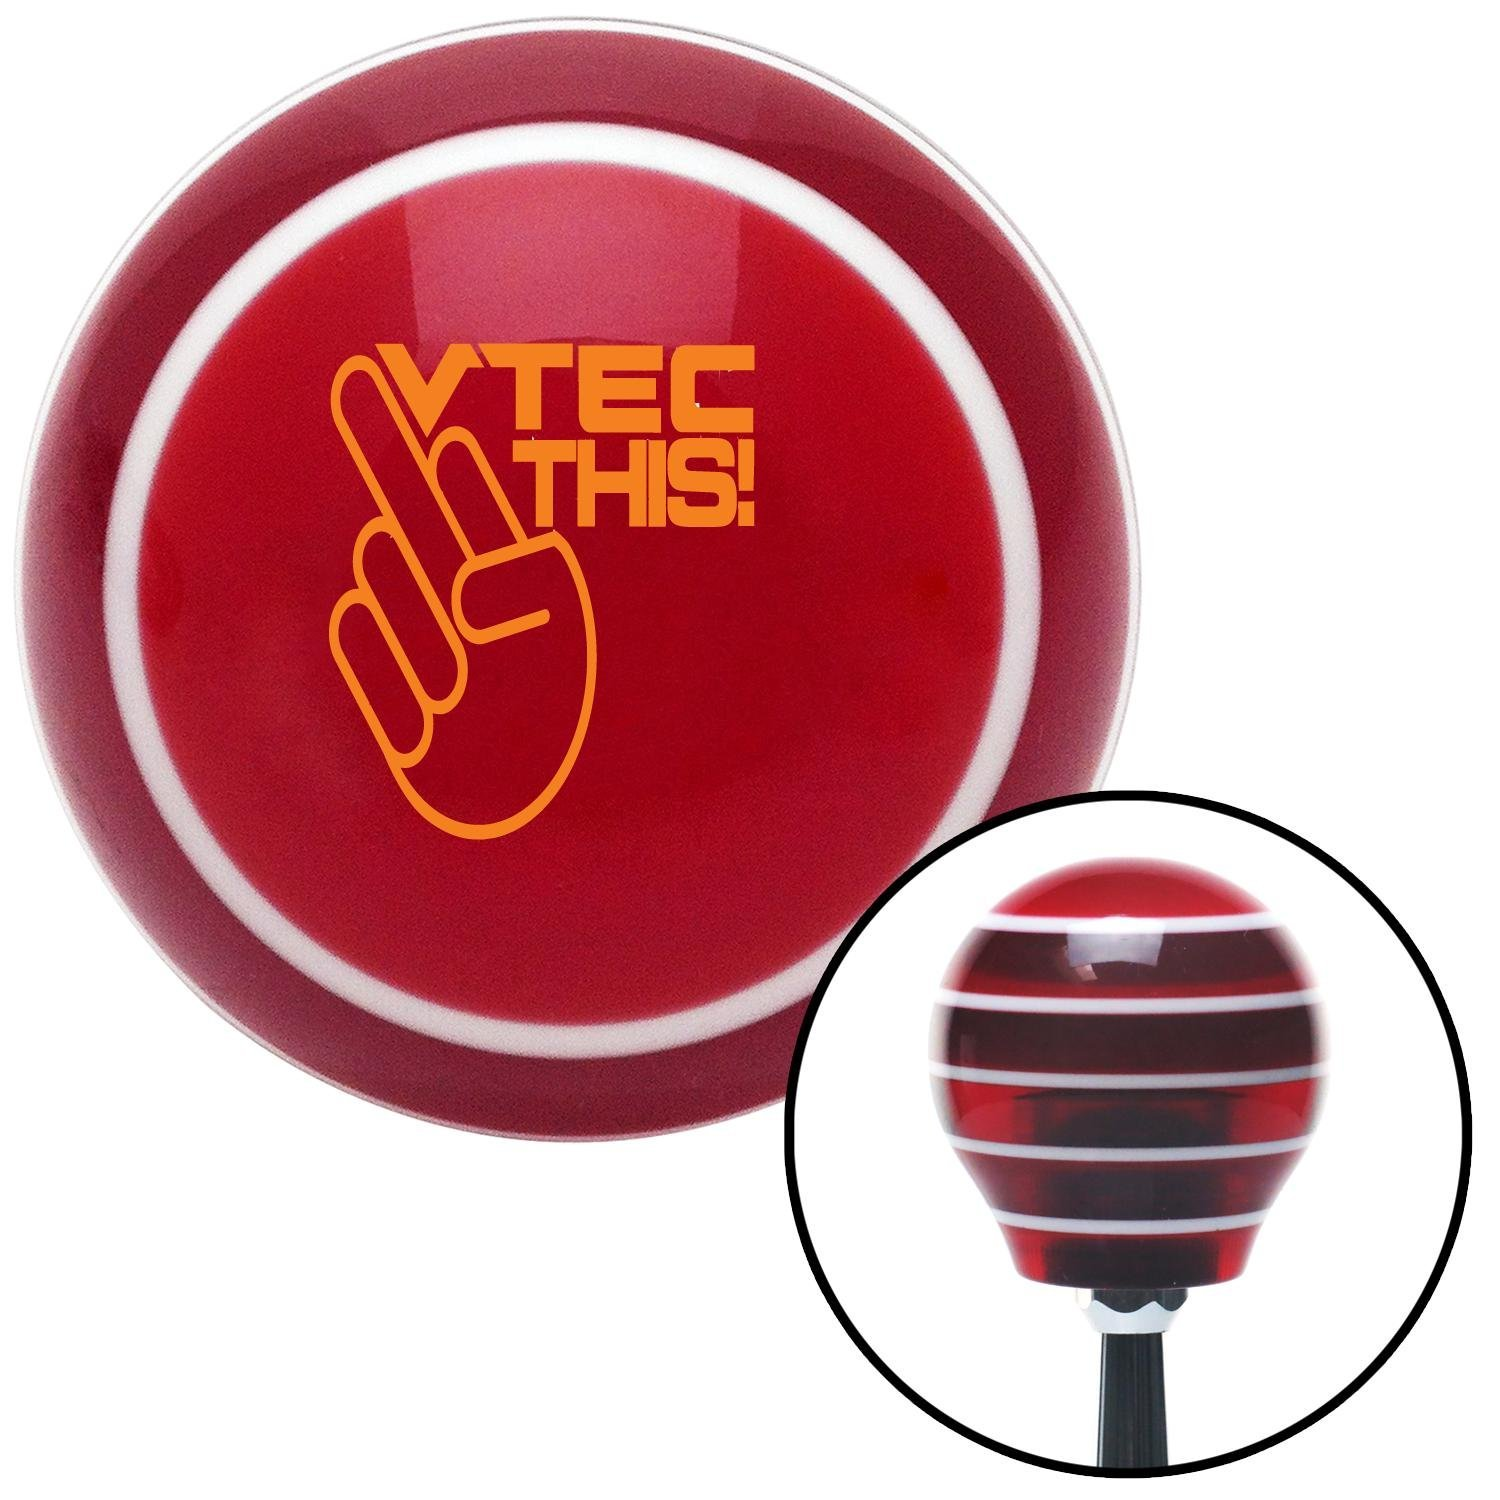 Orange VTEC This! American Shifter 114924 Red Stripe Shift Knob with M16 x 1.5 Insert